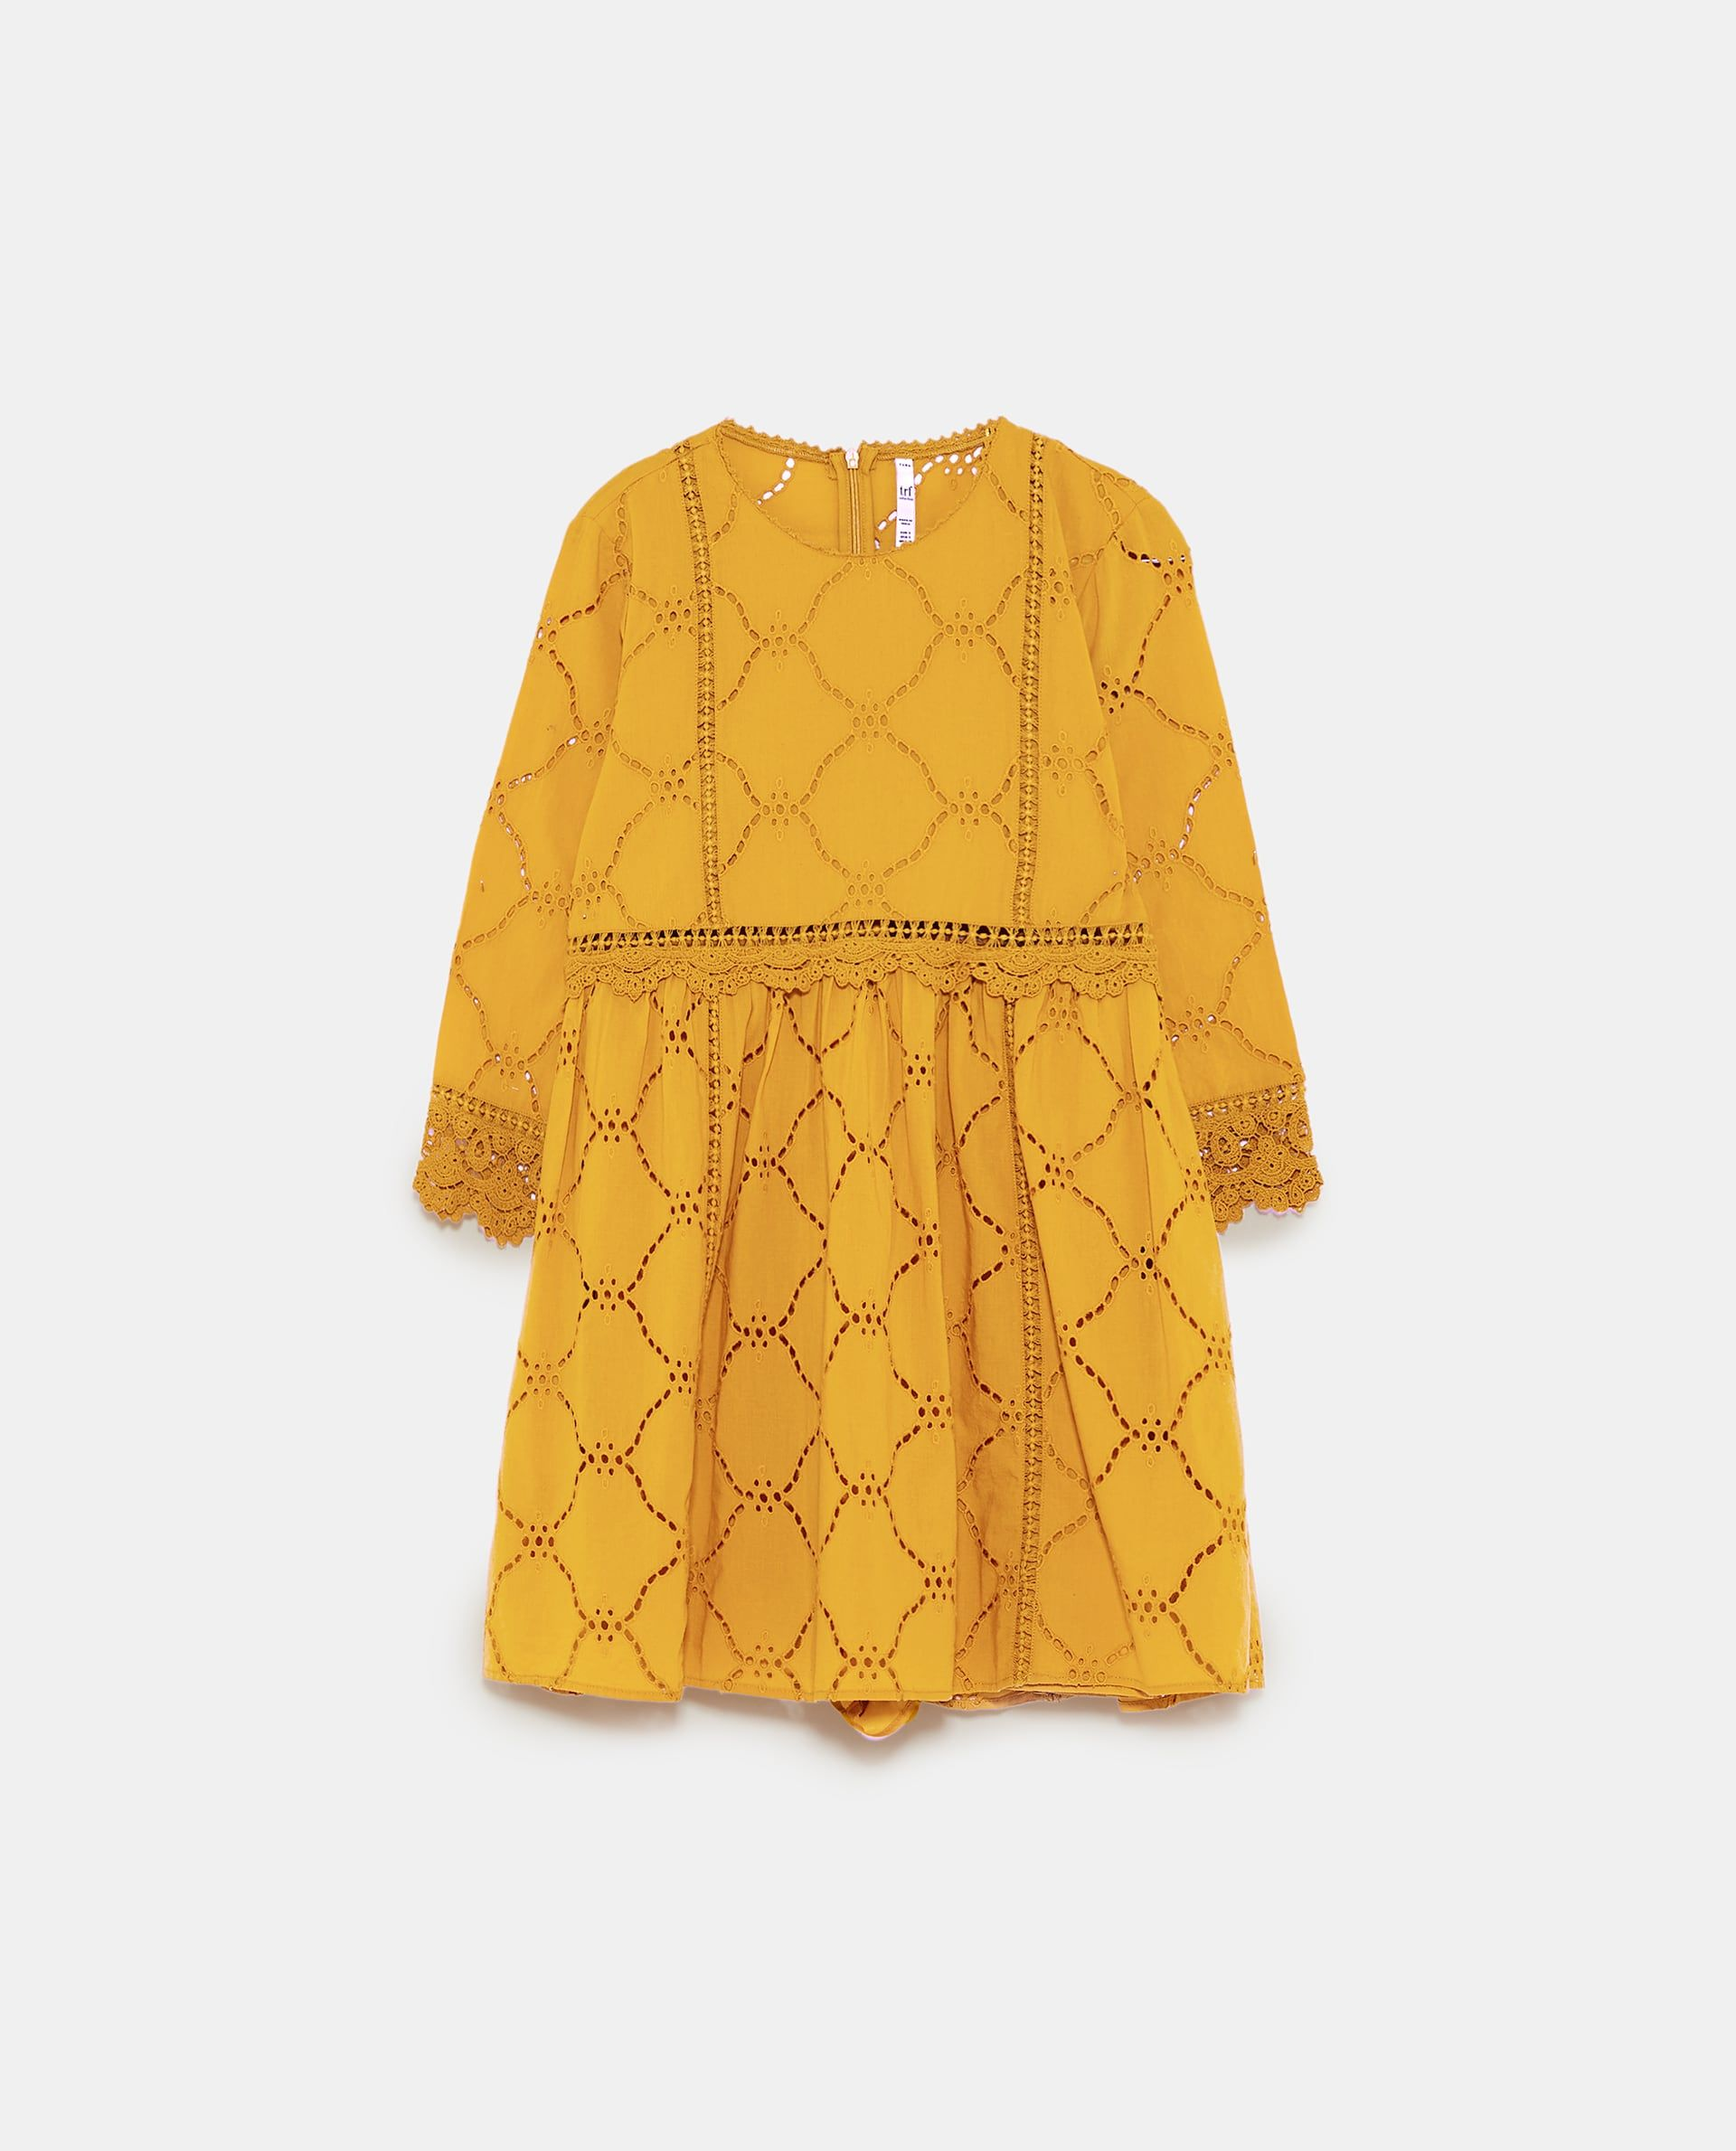 861ca409f98 Image 6 of JUMPSUIT DRESS WITH CUTWORK EMBROIDERY from Zara fashion style  summer lace mustard dress